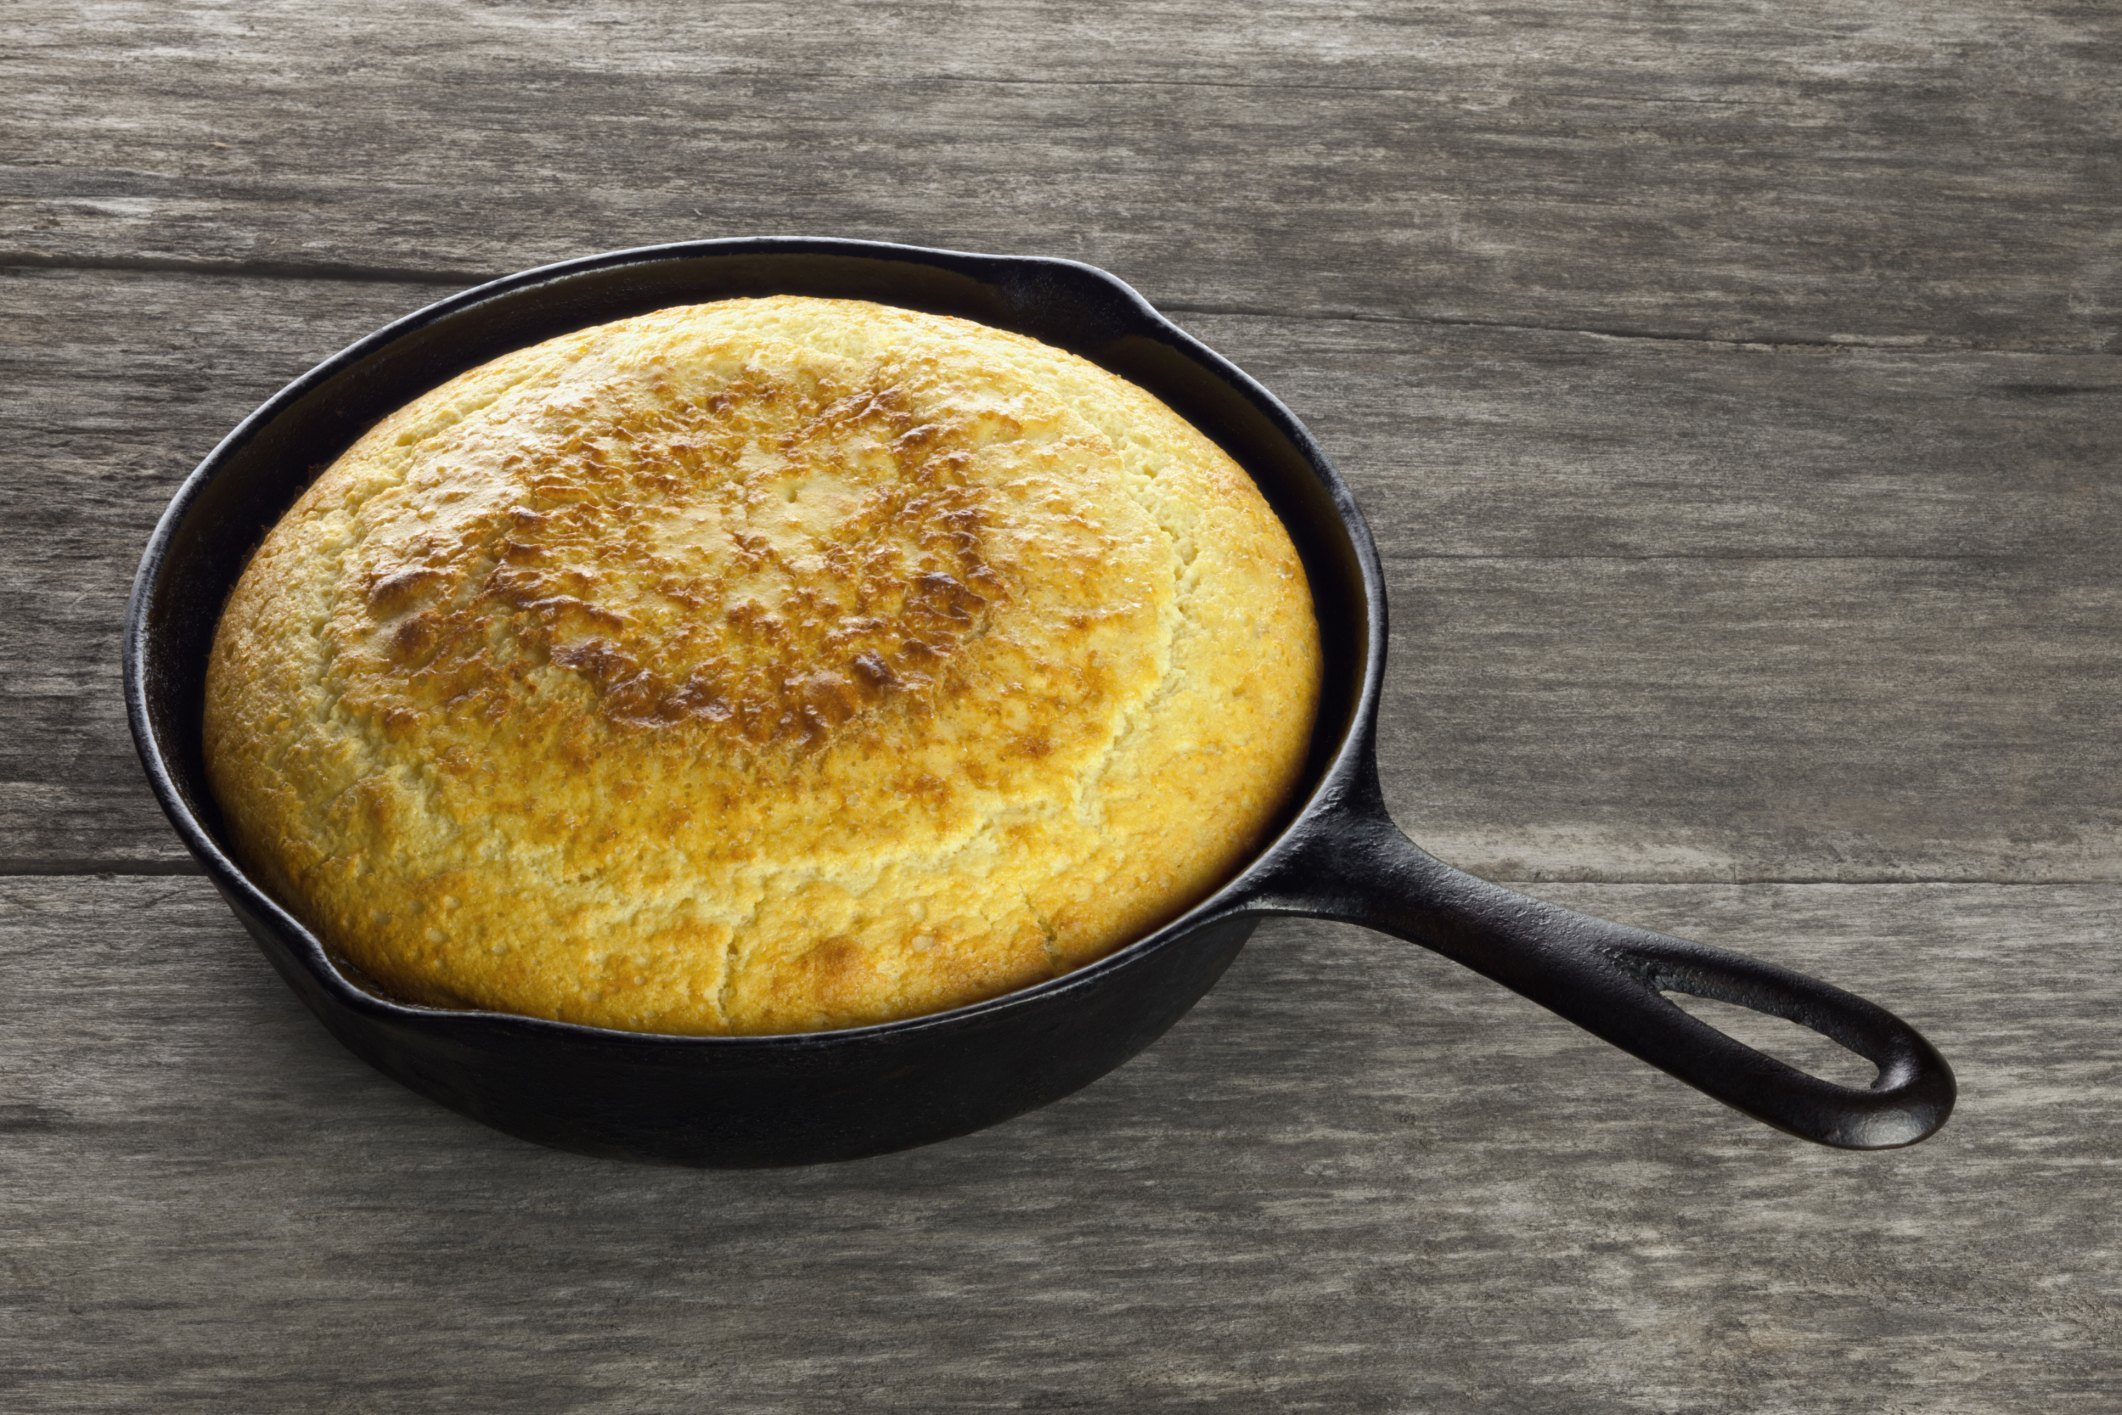 How To Make Cornbread From Scratch Southern Cornbread